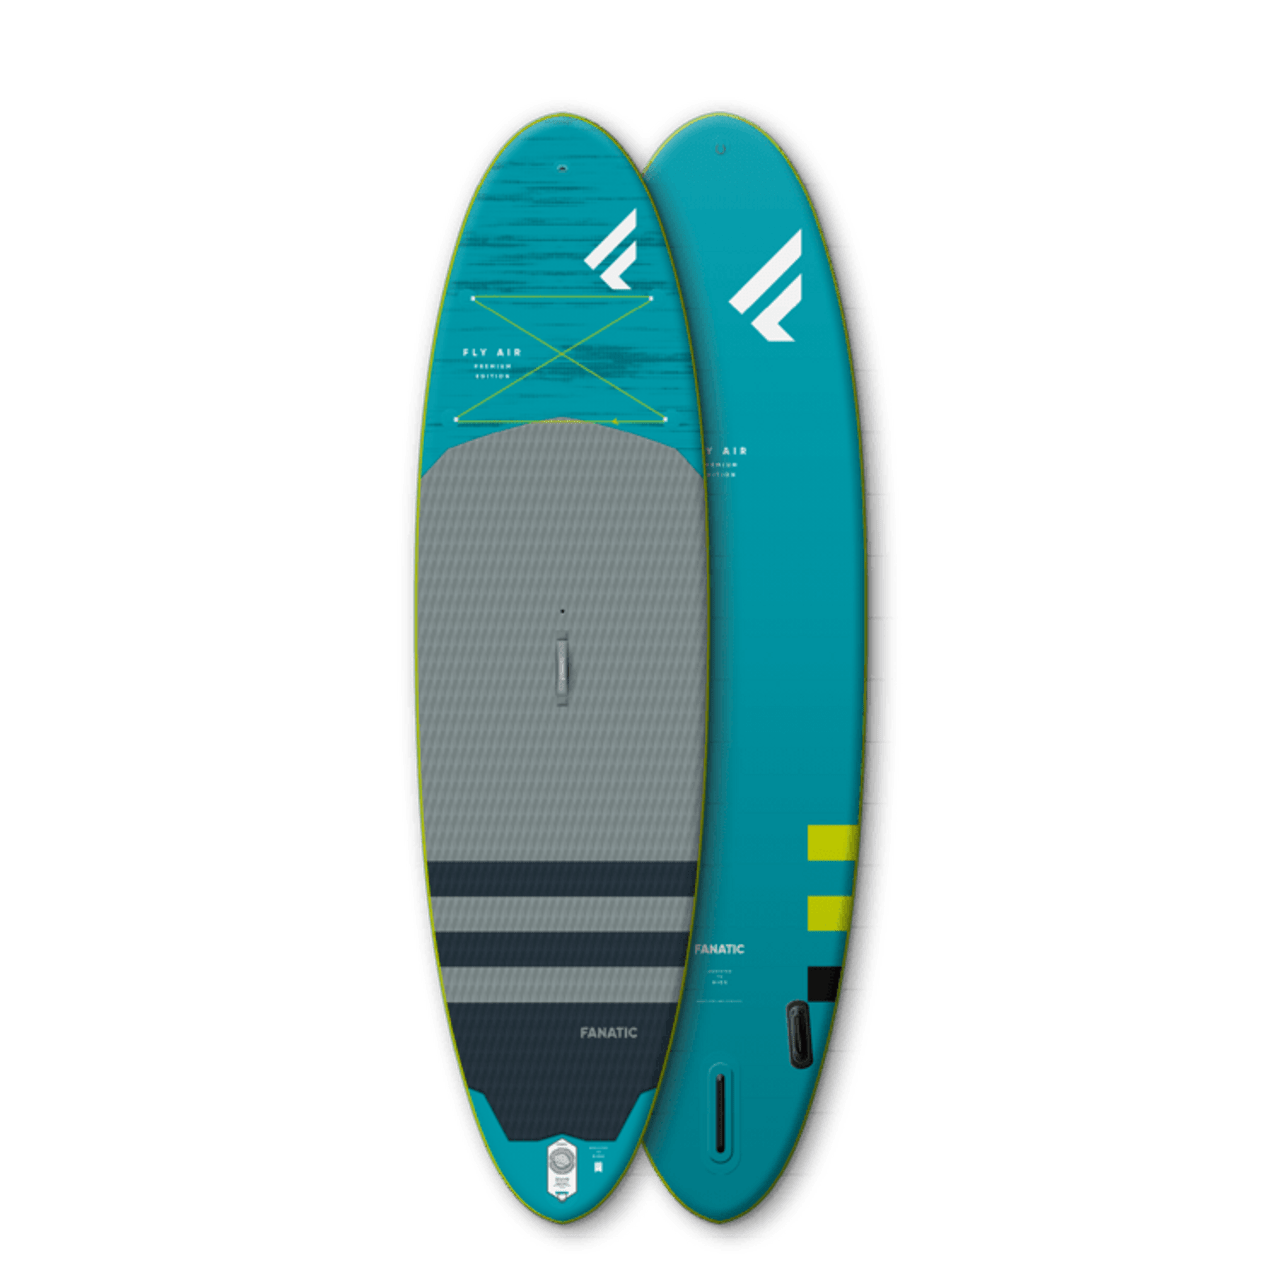 2020 Fanatic FLY AIR PREMIUM 9'8''